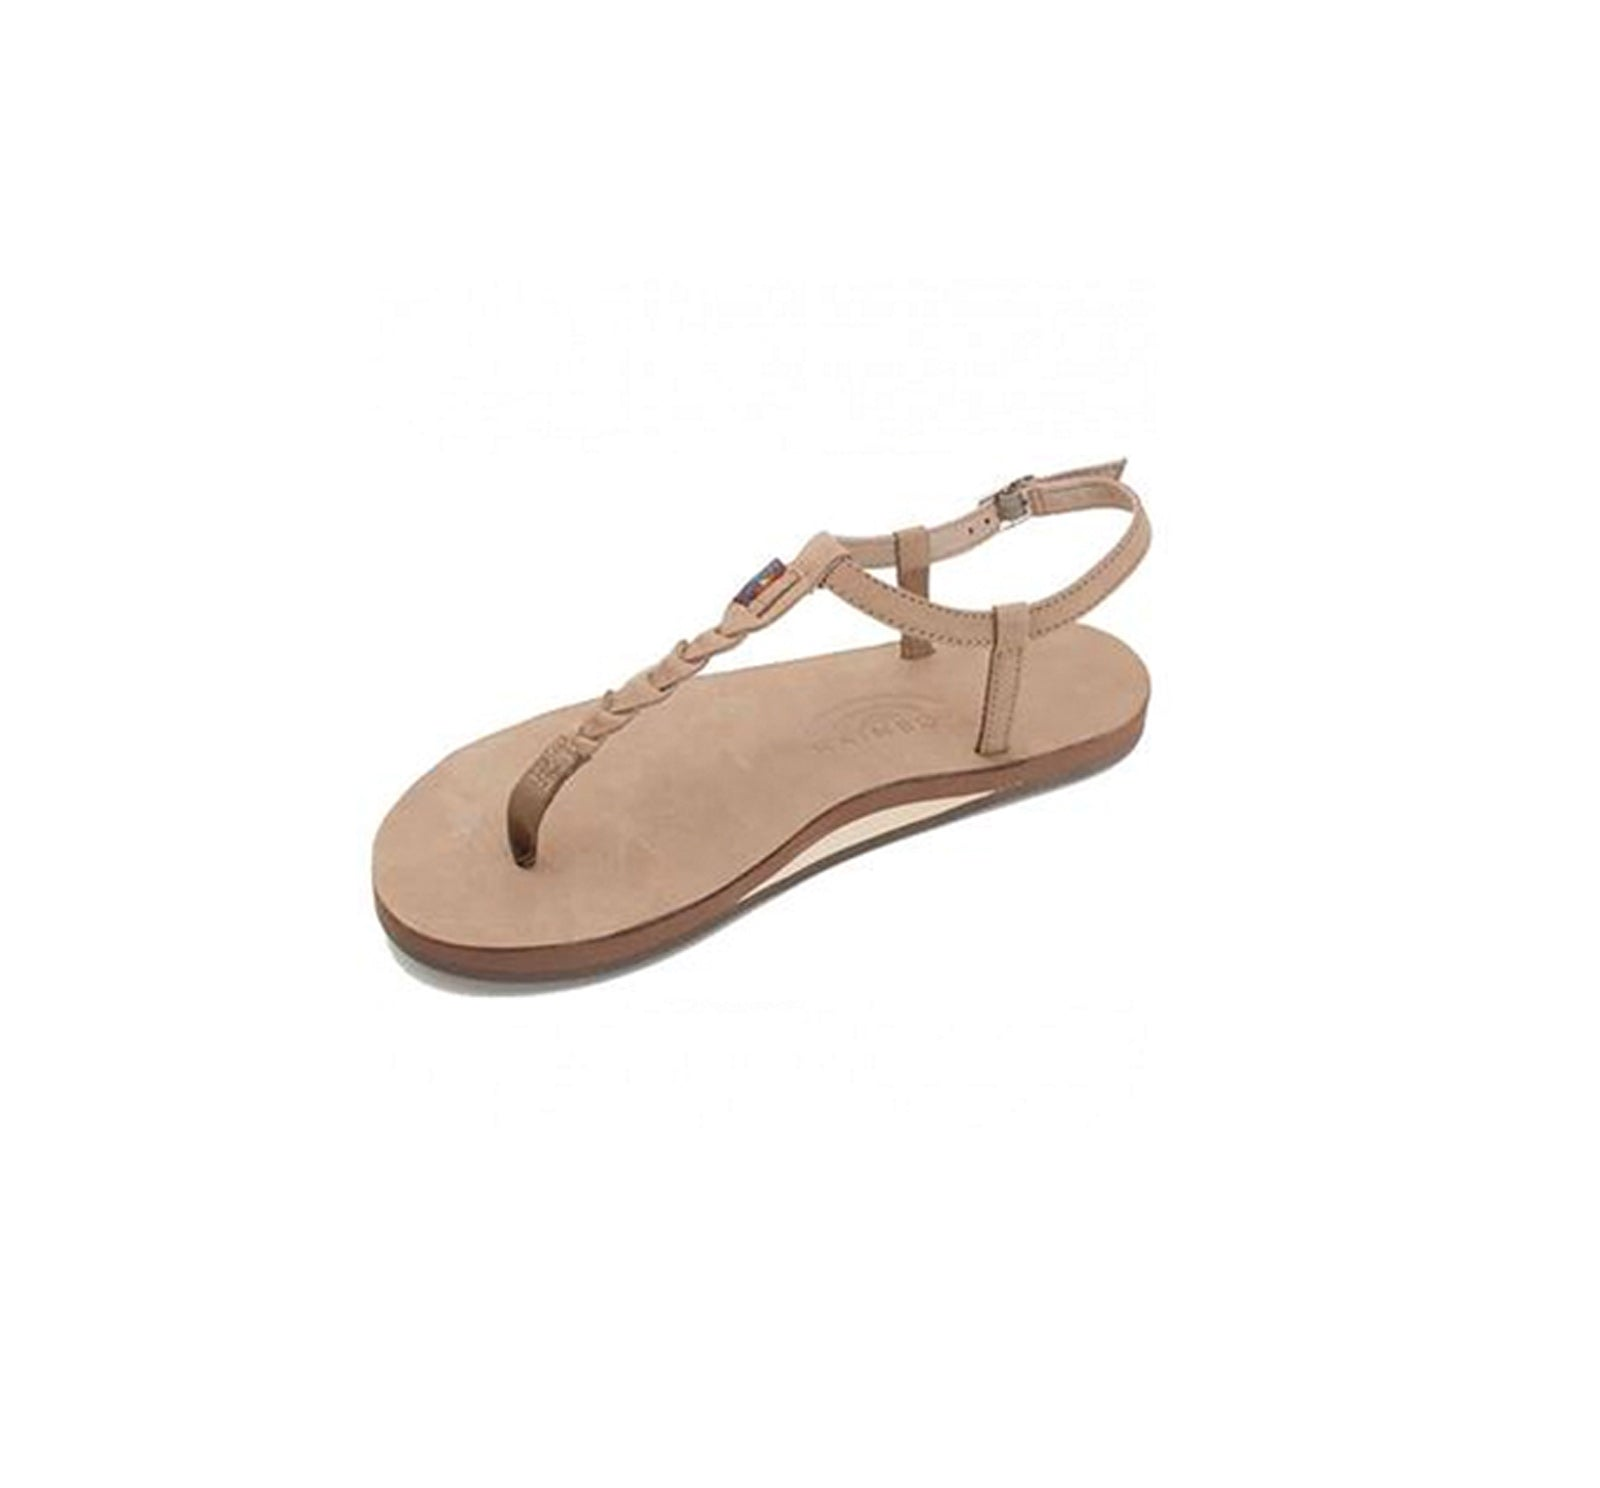 Rainbow T-Street Women's Sandals - Dark Brown